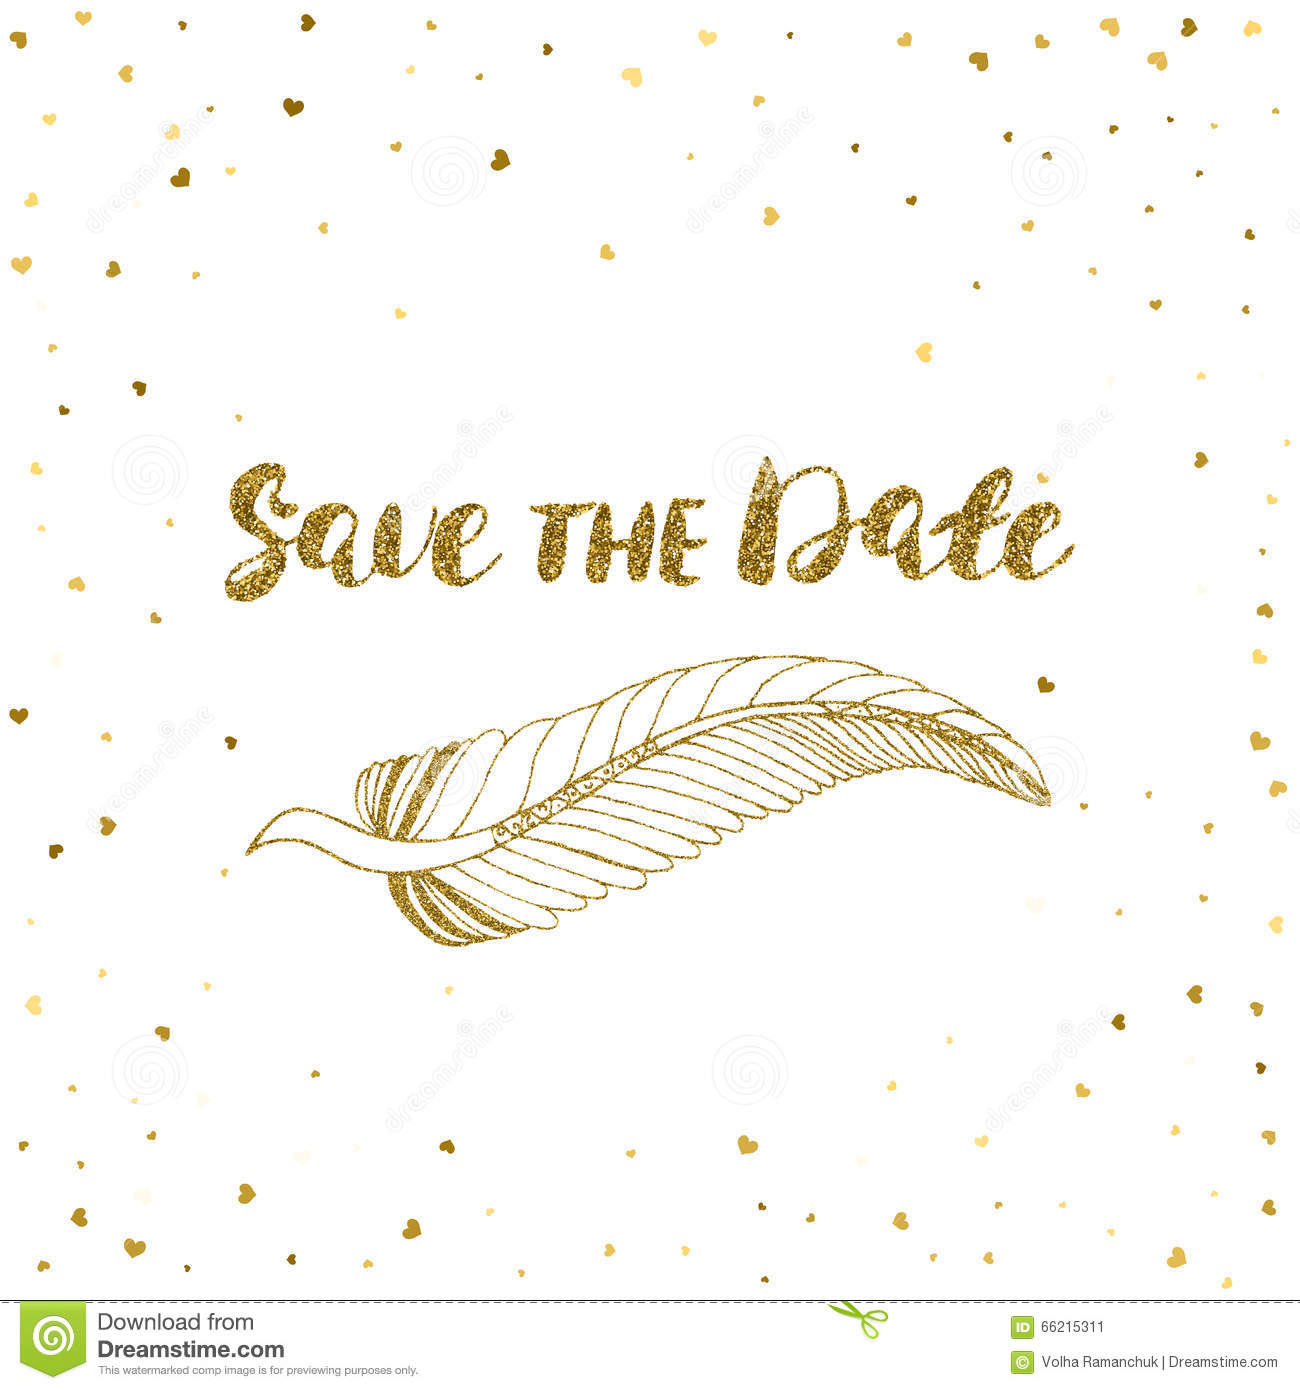 Template for card banner flyer save the date invitation template for card banner flyer save the date invitation birthday party with golden feather royalty free illustration pronofoot35fo Image collections